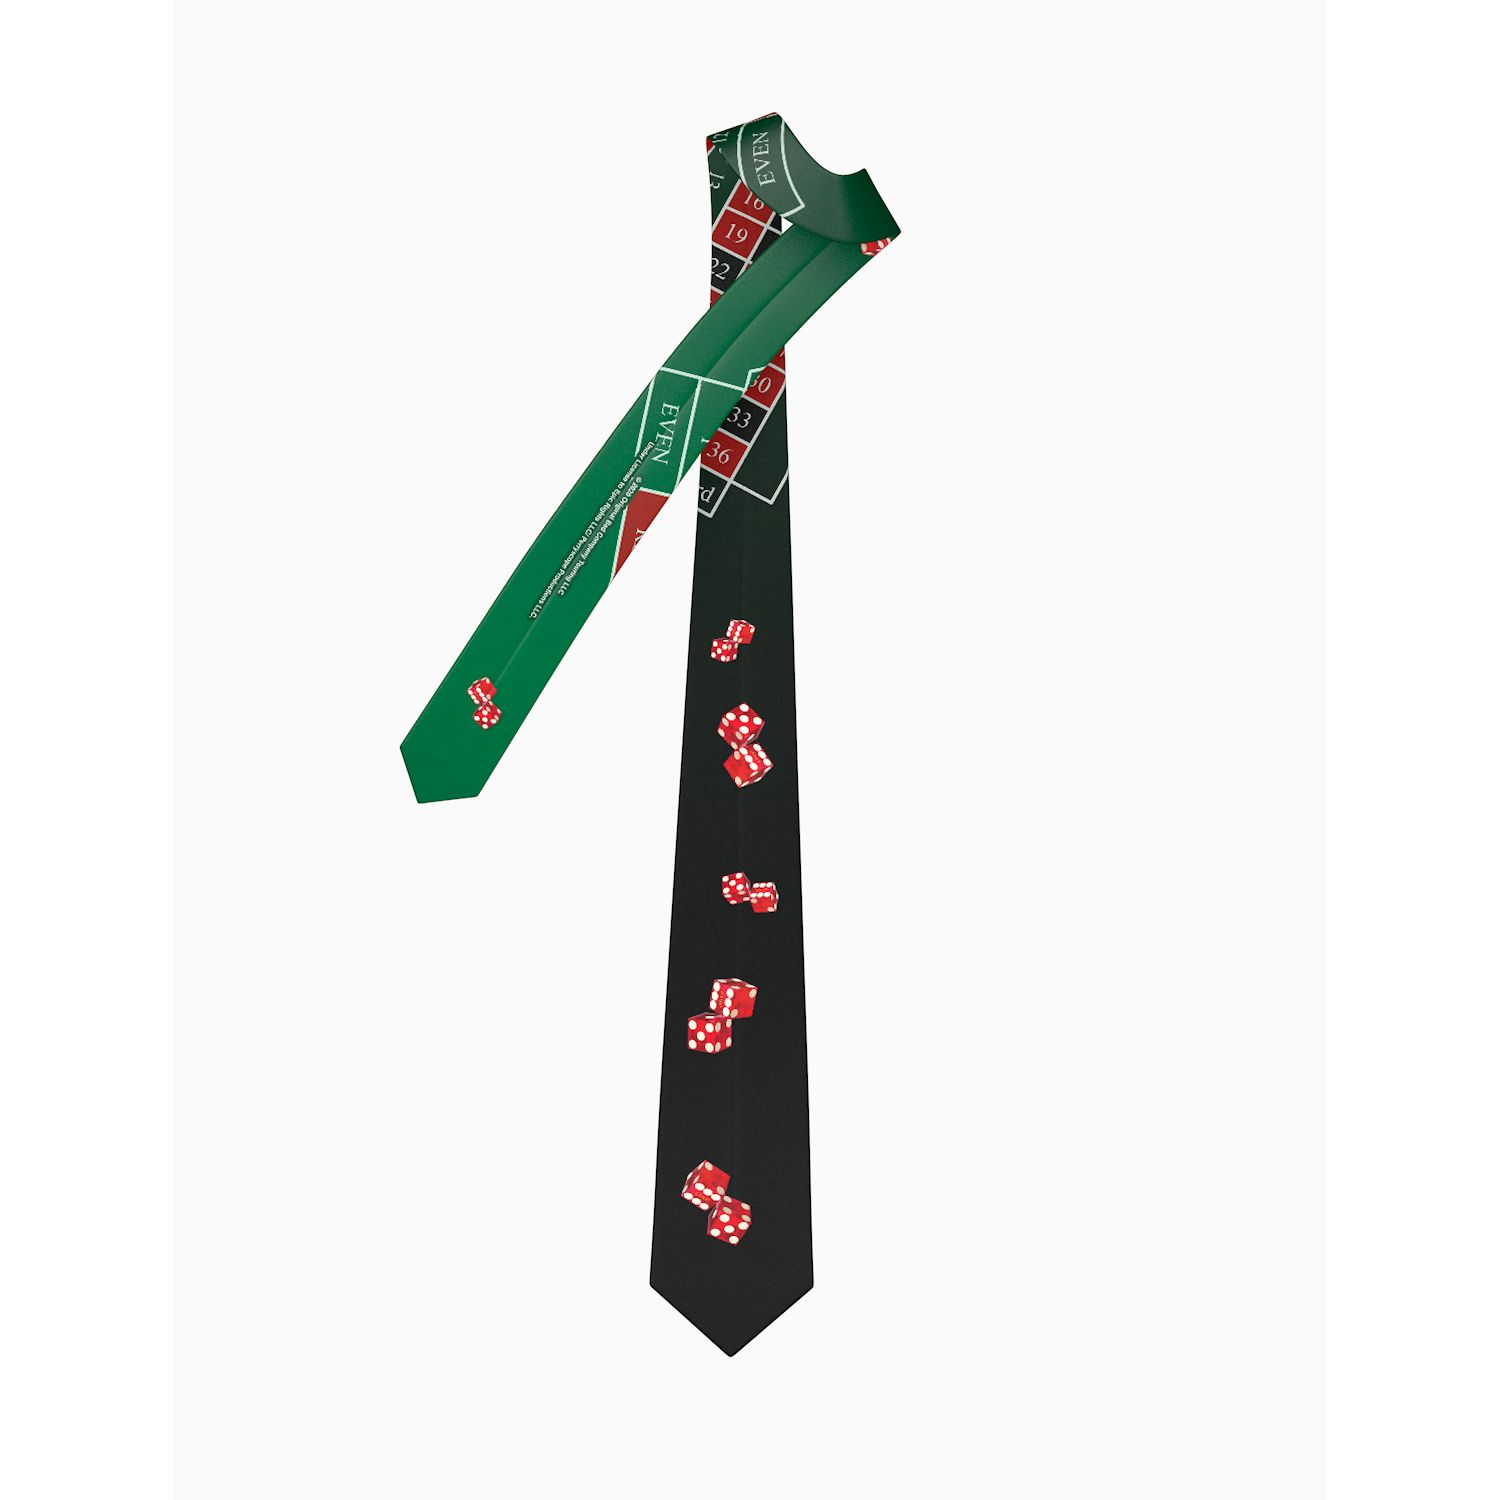 Straight Shooter Tie